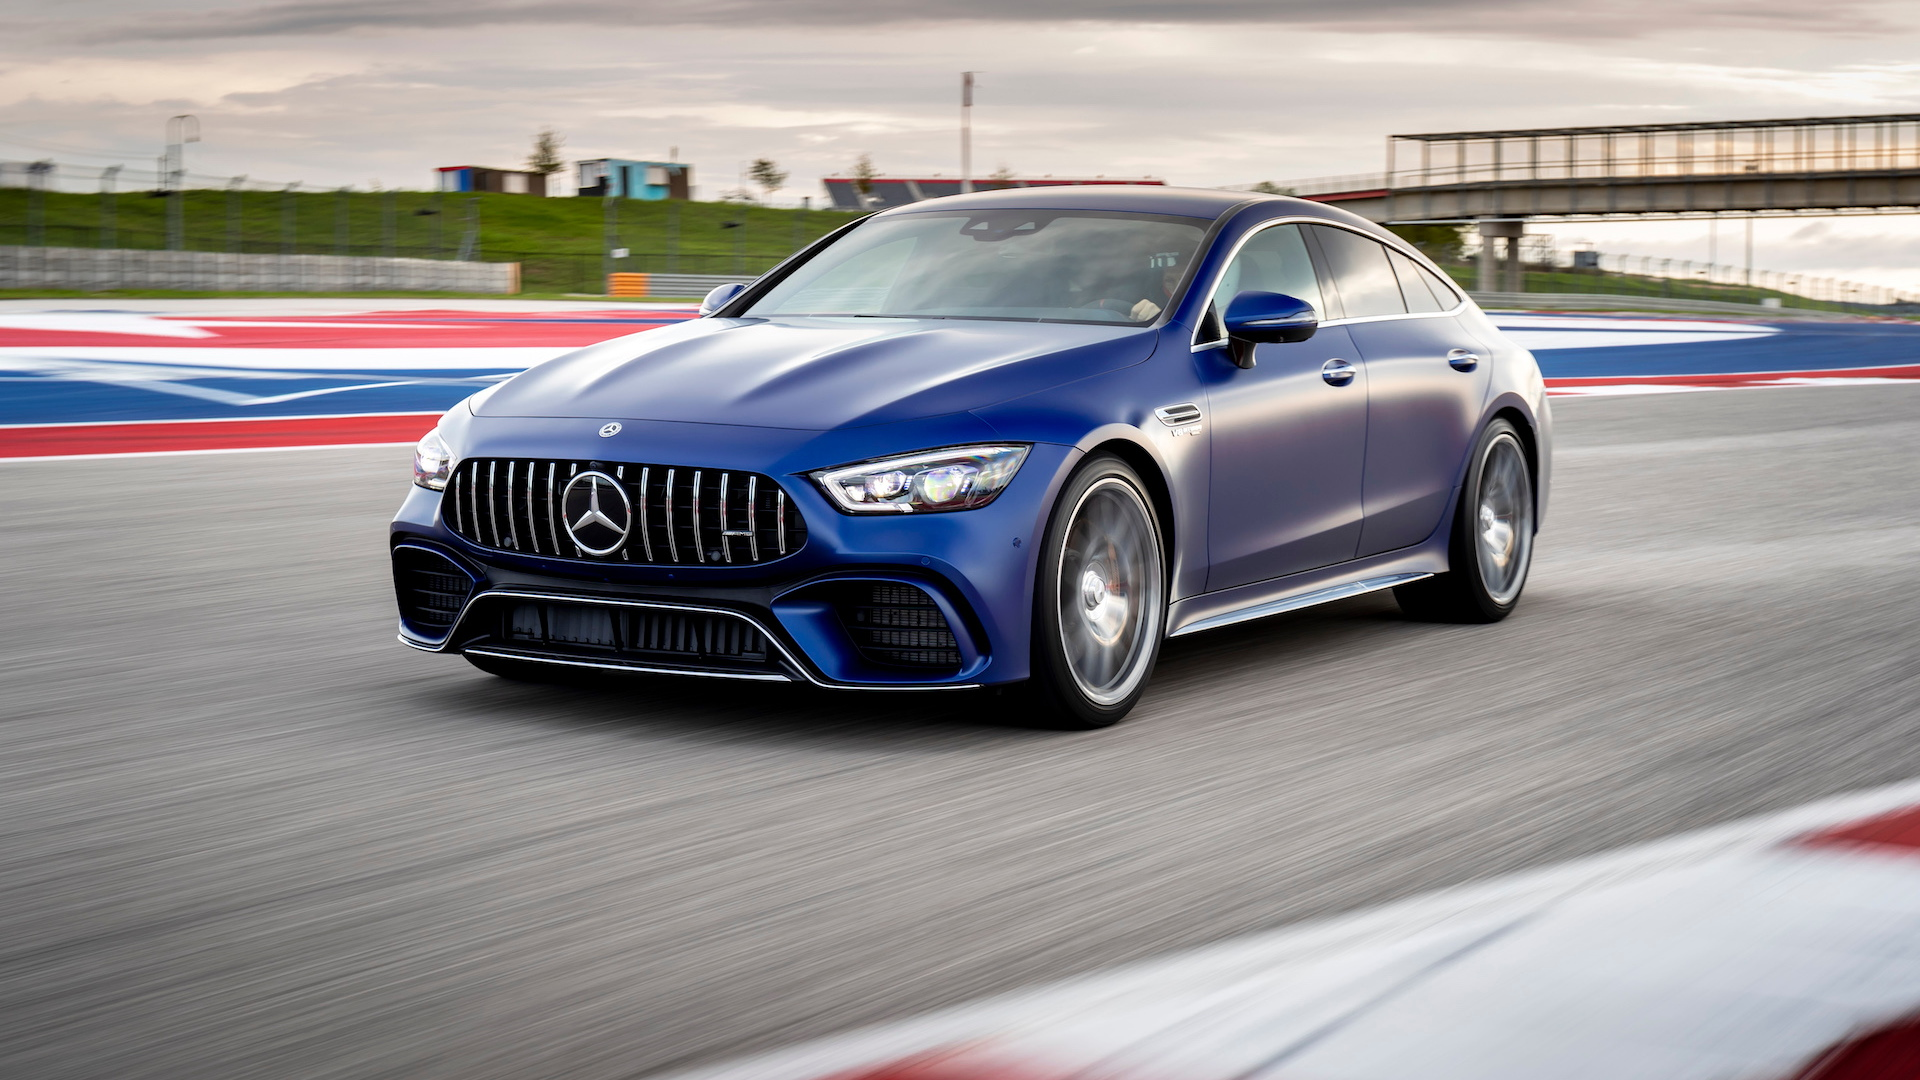 2019 Mercedes AMG GT 63 S 4 Door Coupe First Drive Review